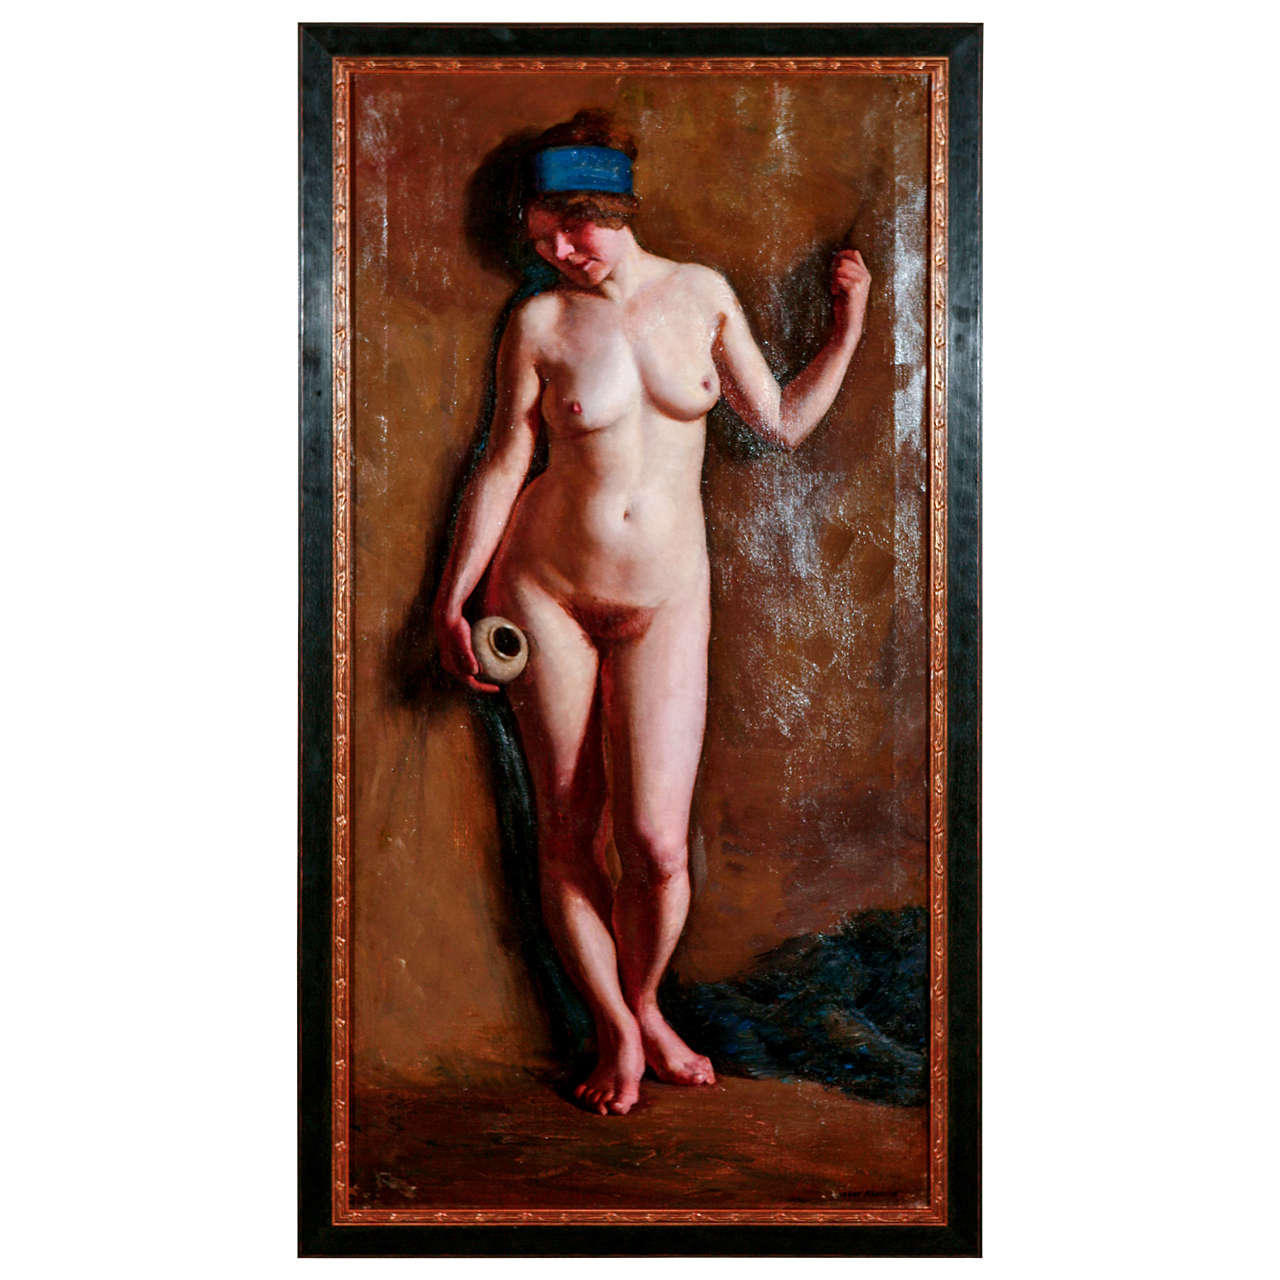 H. Farlow, Early 20th Century Nude Study For Sale